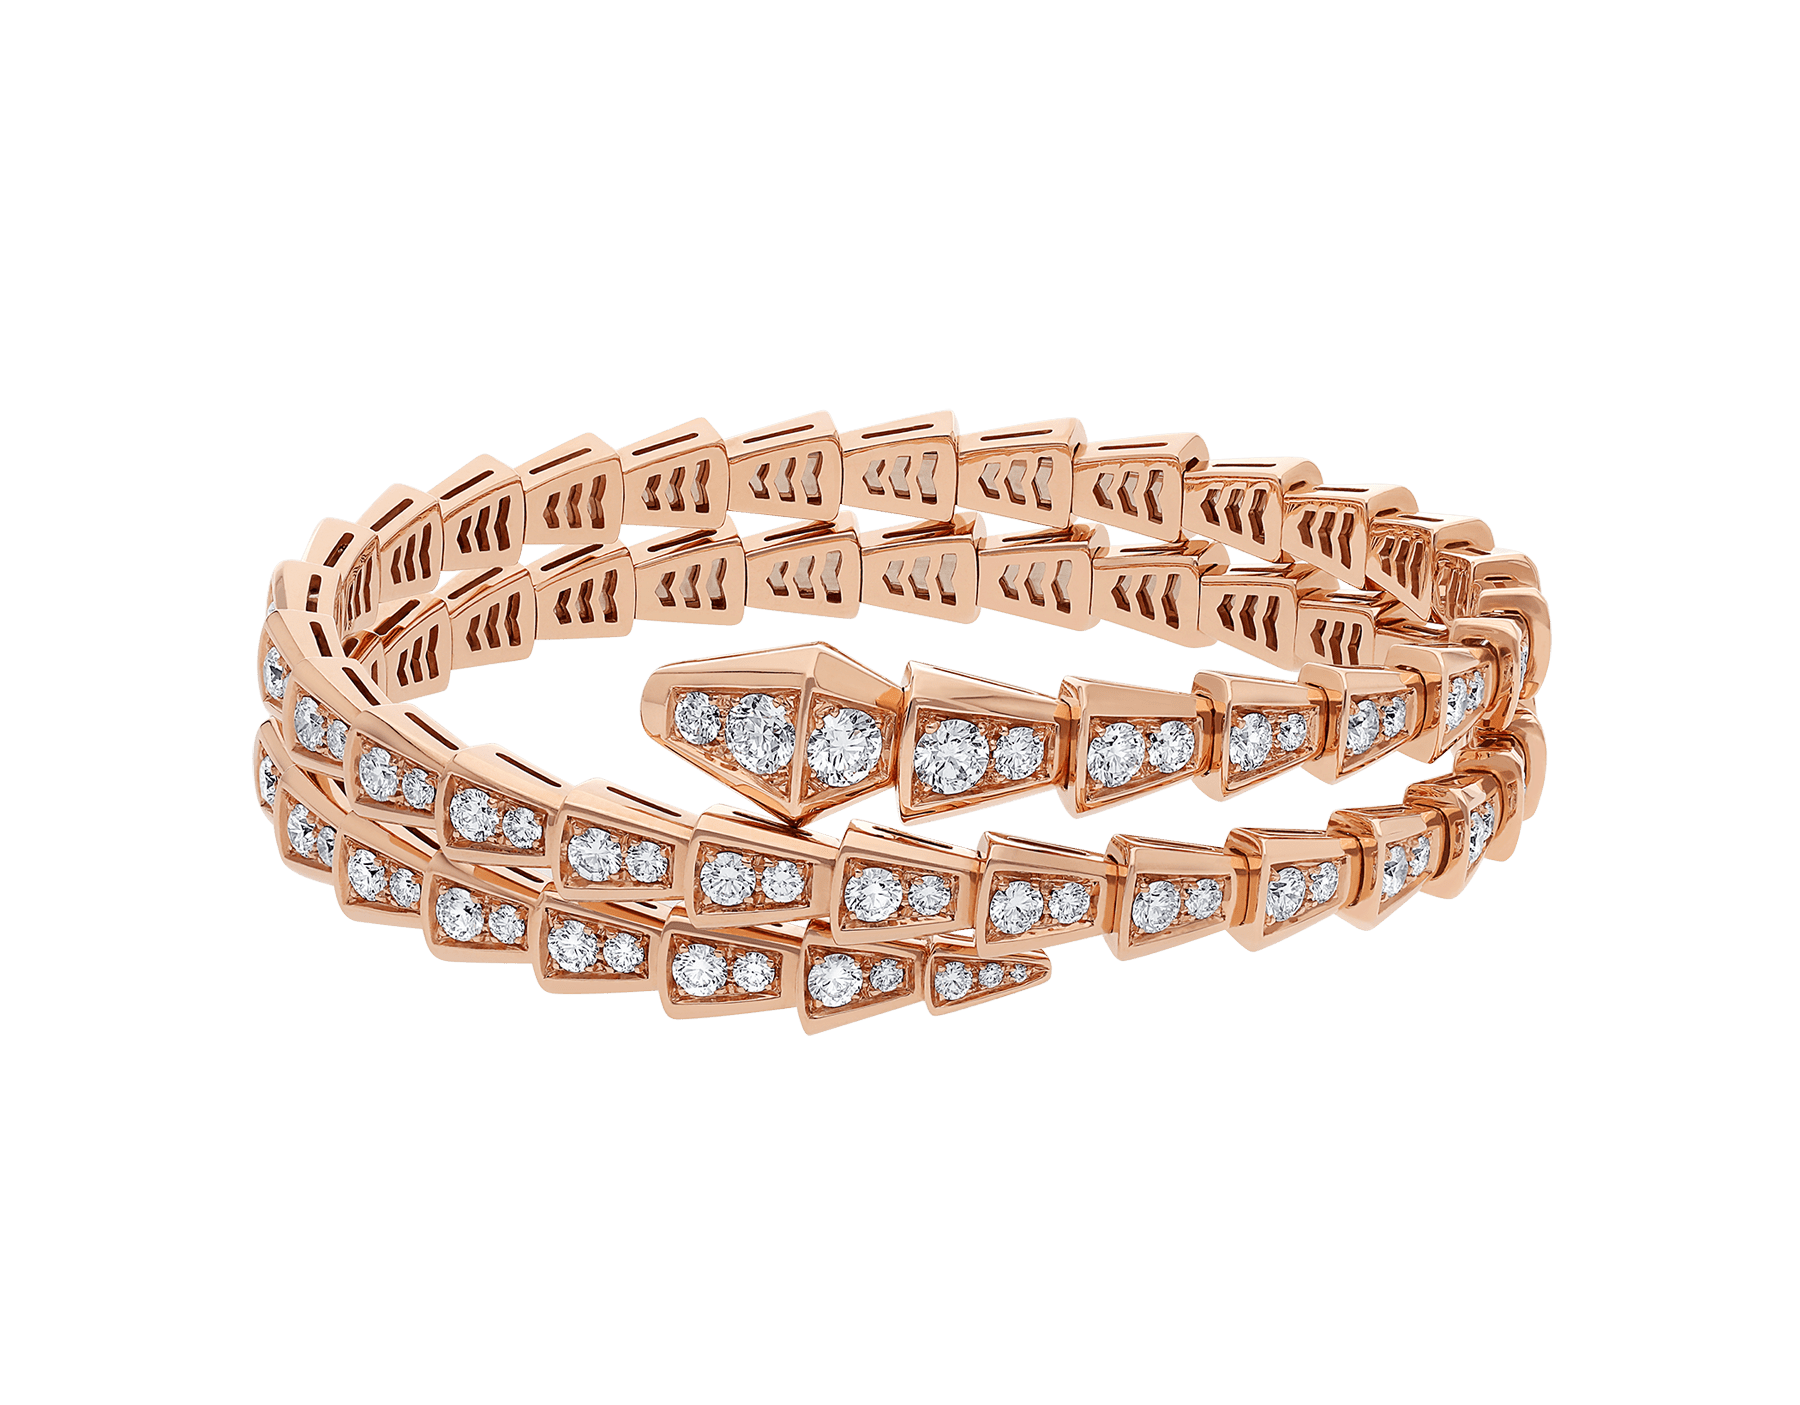 Serpenti Viper two-coil 18 kt rose gold bracelet, set with pavé diamonds BR858796 image 2